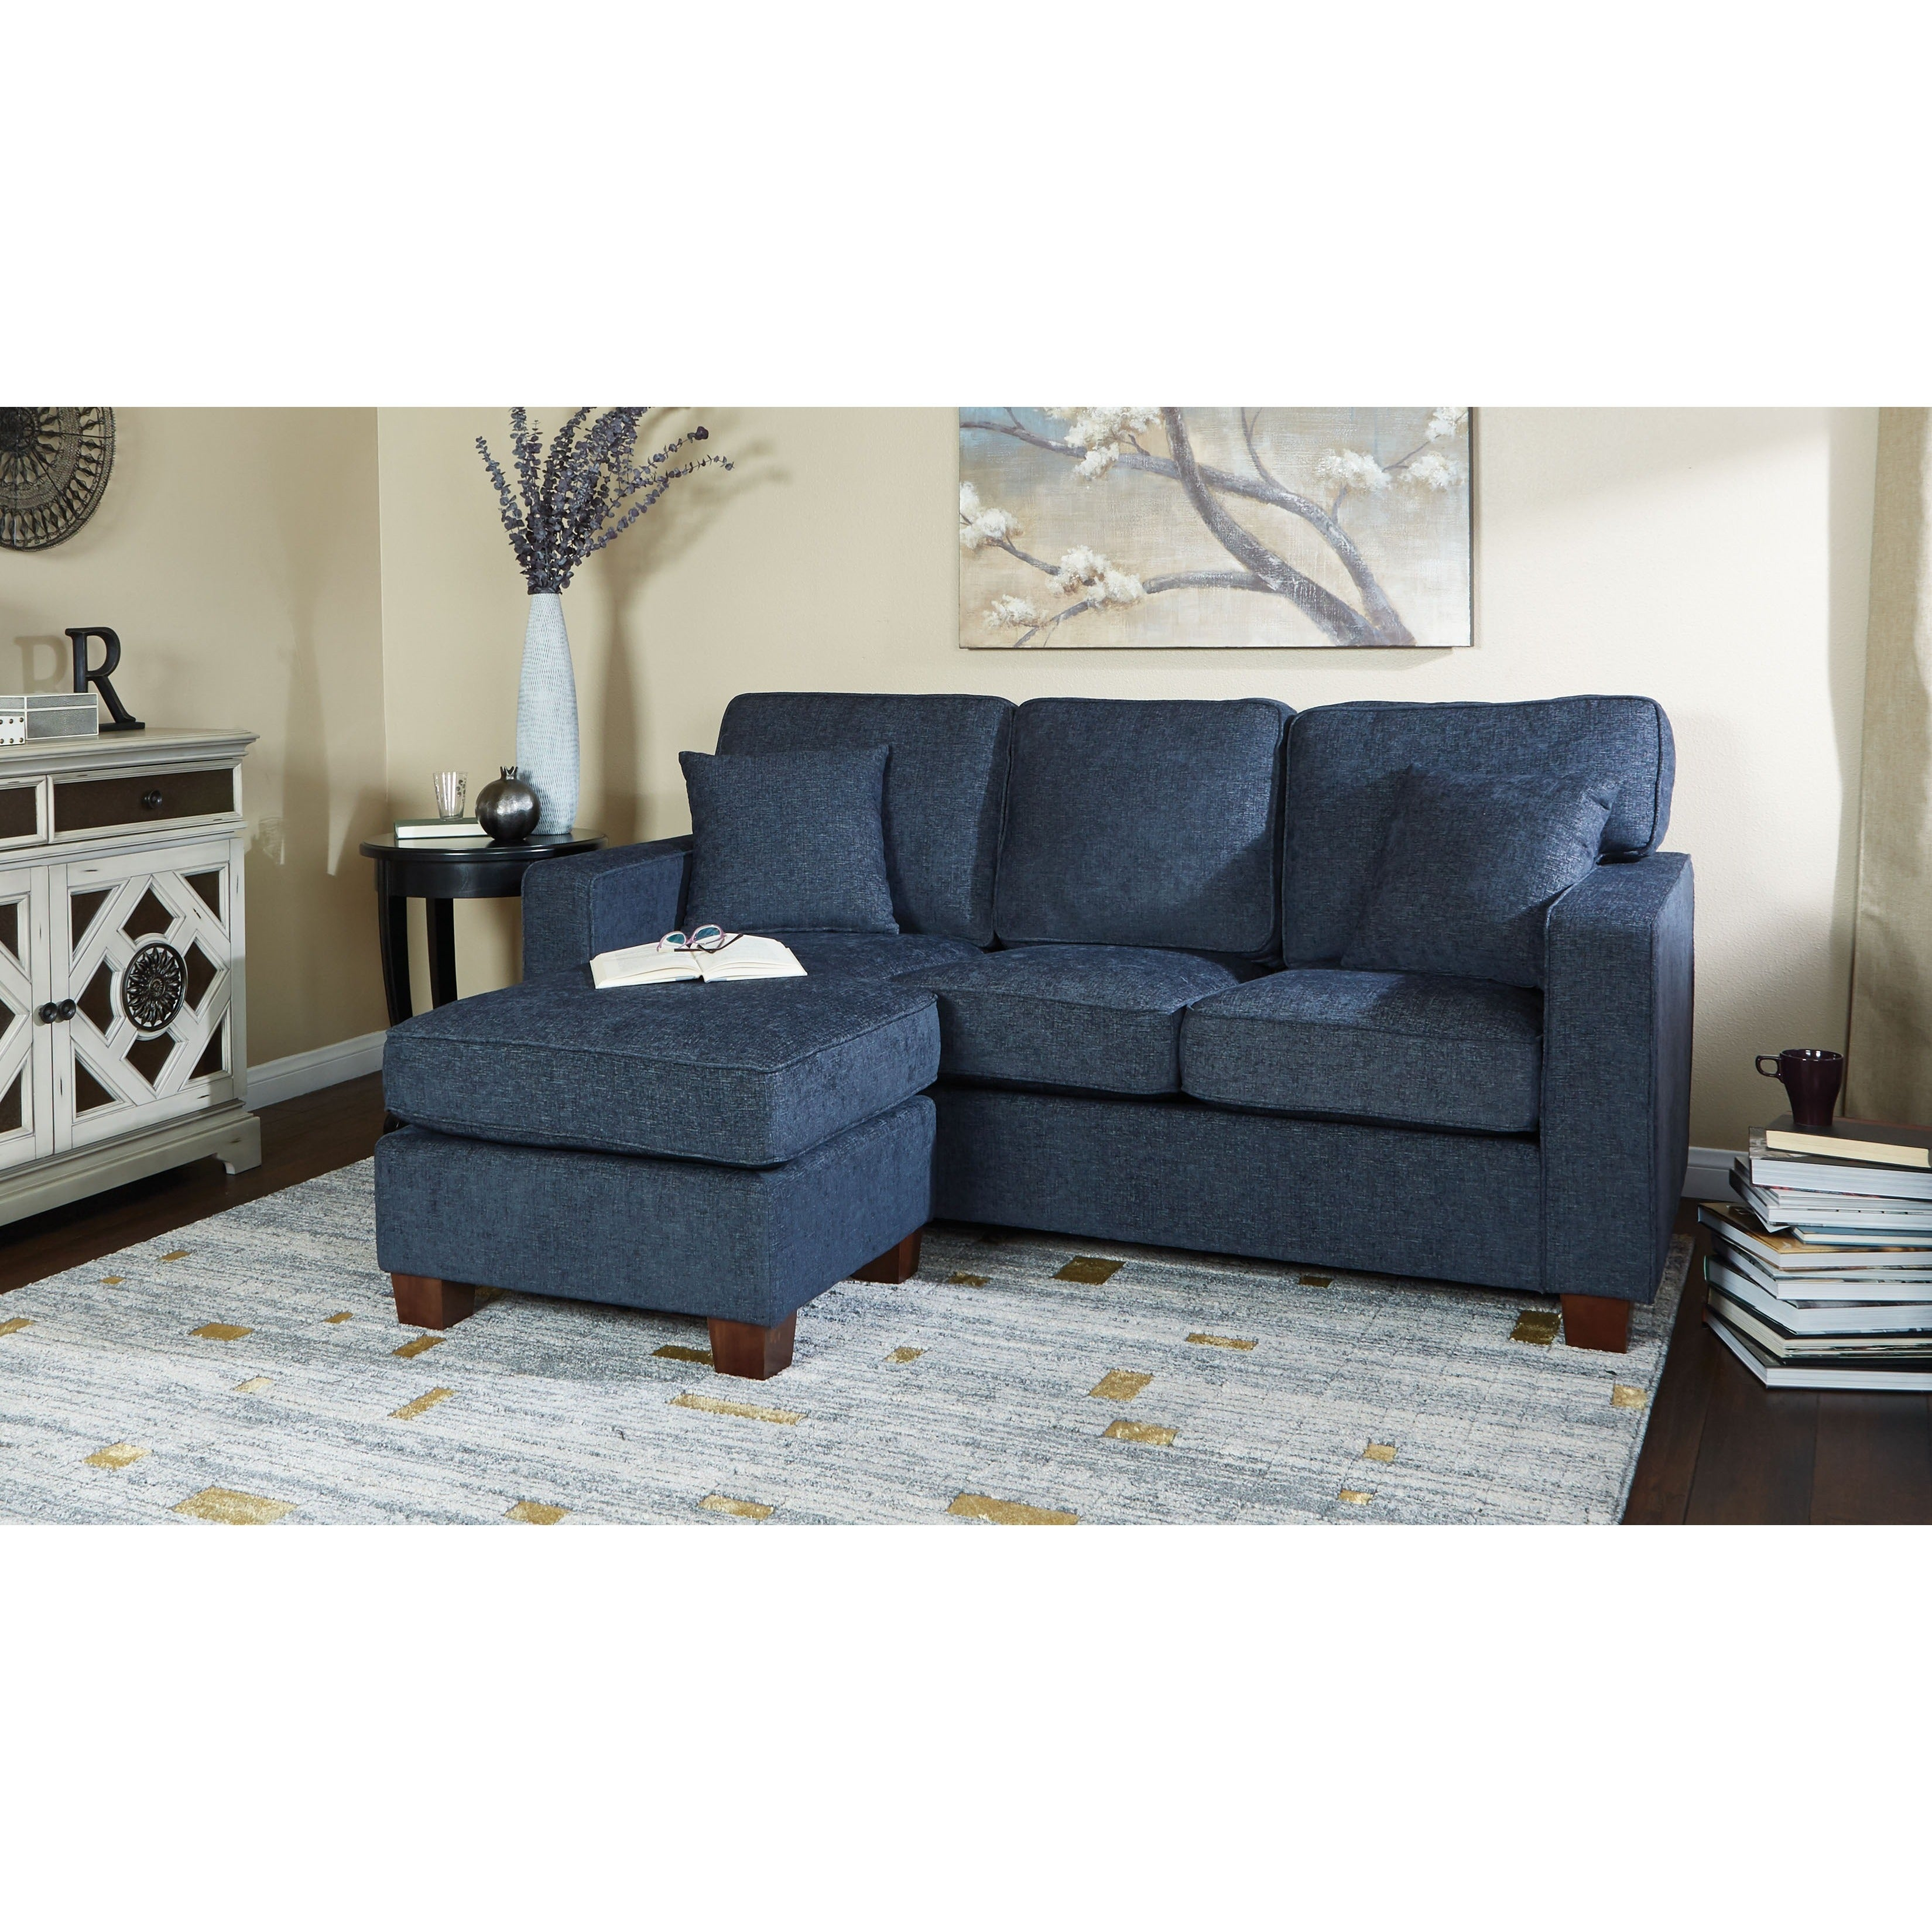 Merveilleux Shop Porch U0026 Den Over The Rhine Renner Reversible Chaise Sectional Sofa    Free Shipping Today   Overstock.com   20340403